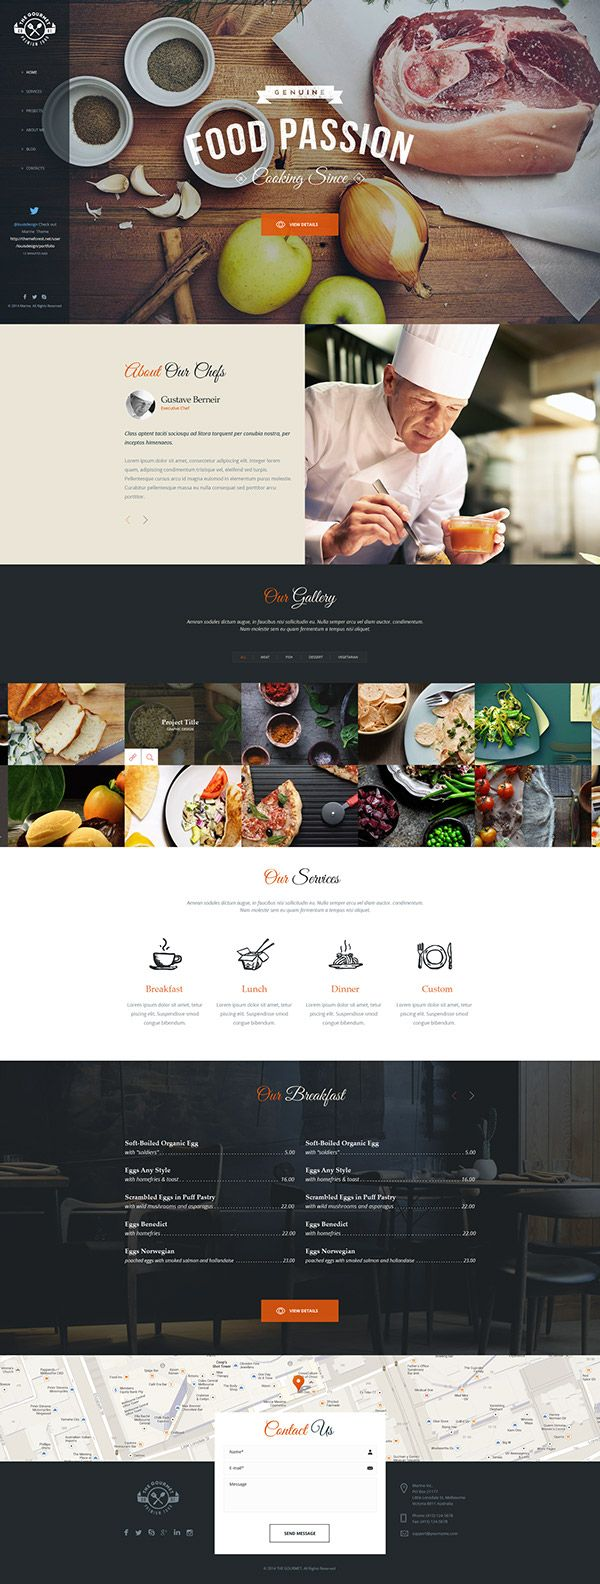 The Gourmet – Food WP Skin & Theme on